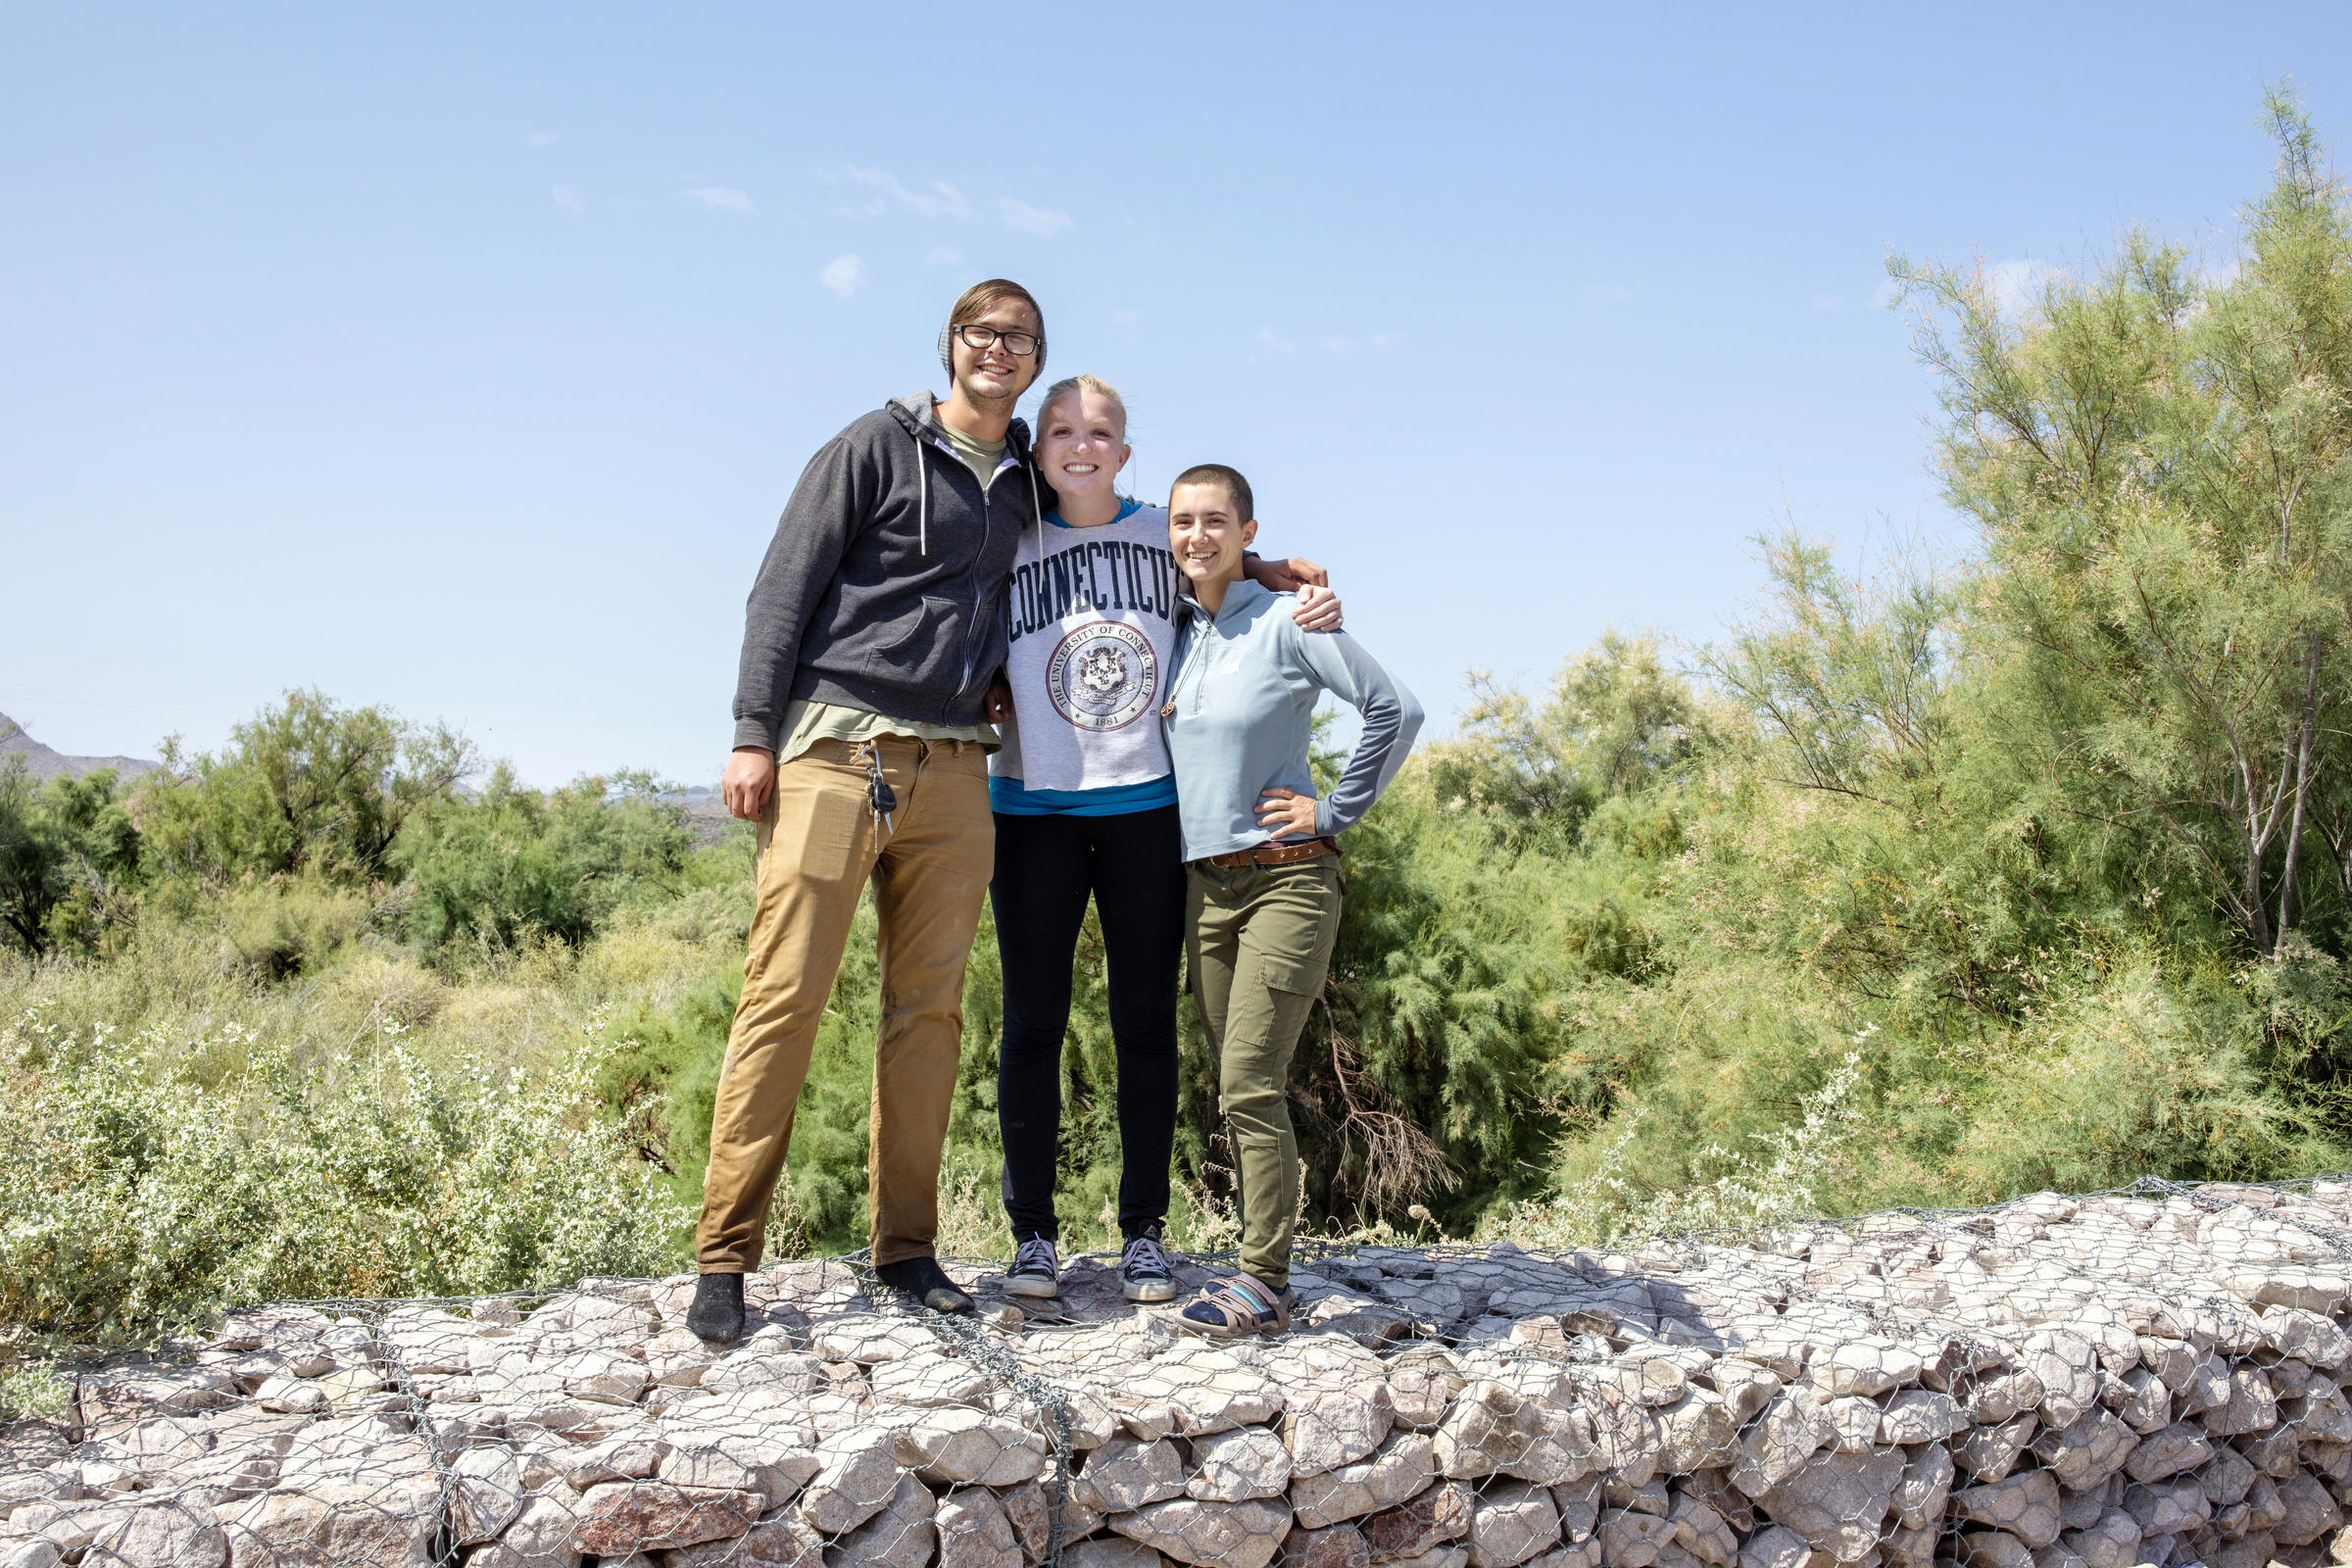 Daniel Hite, Emma Laurens, and Mia McGehee pose together smiling after their marsh bird survey.